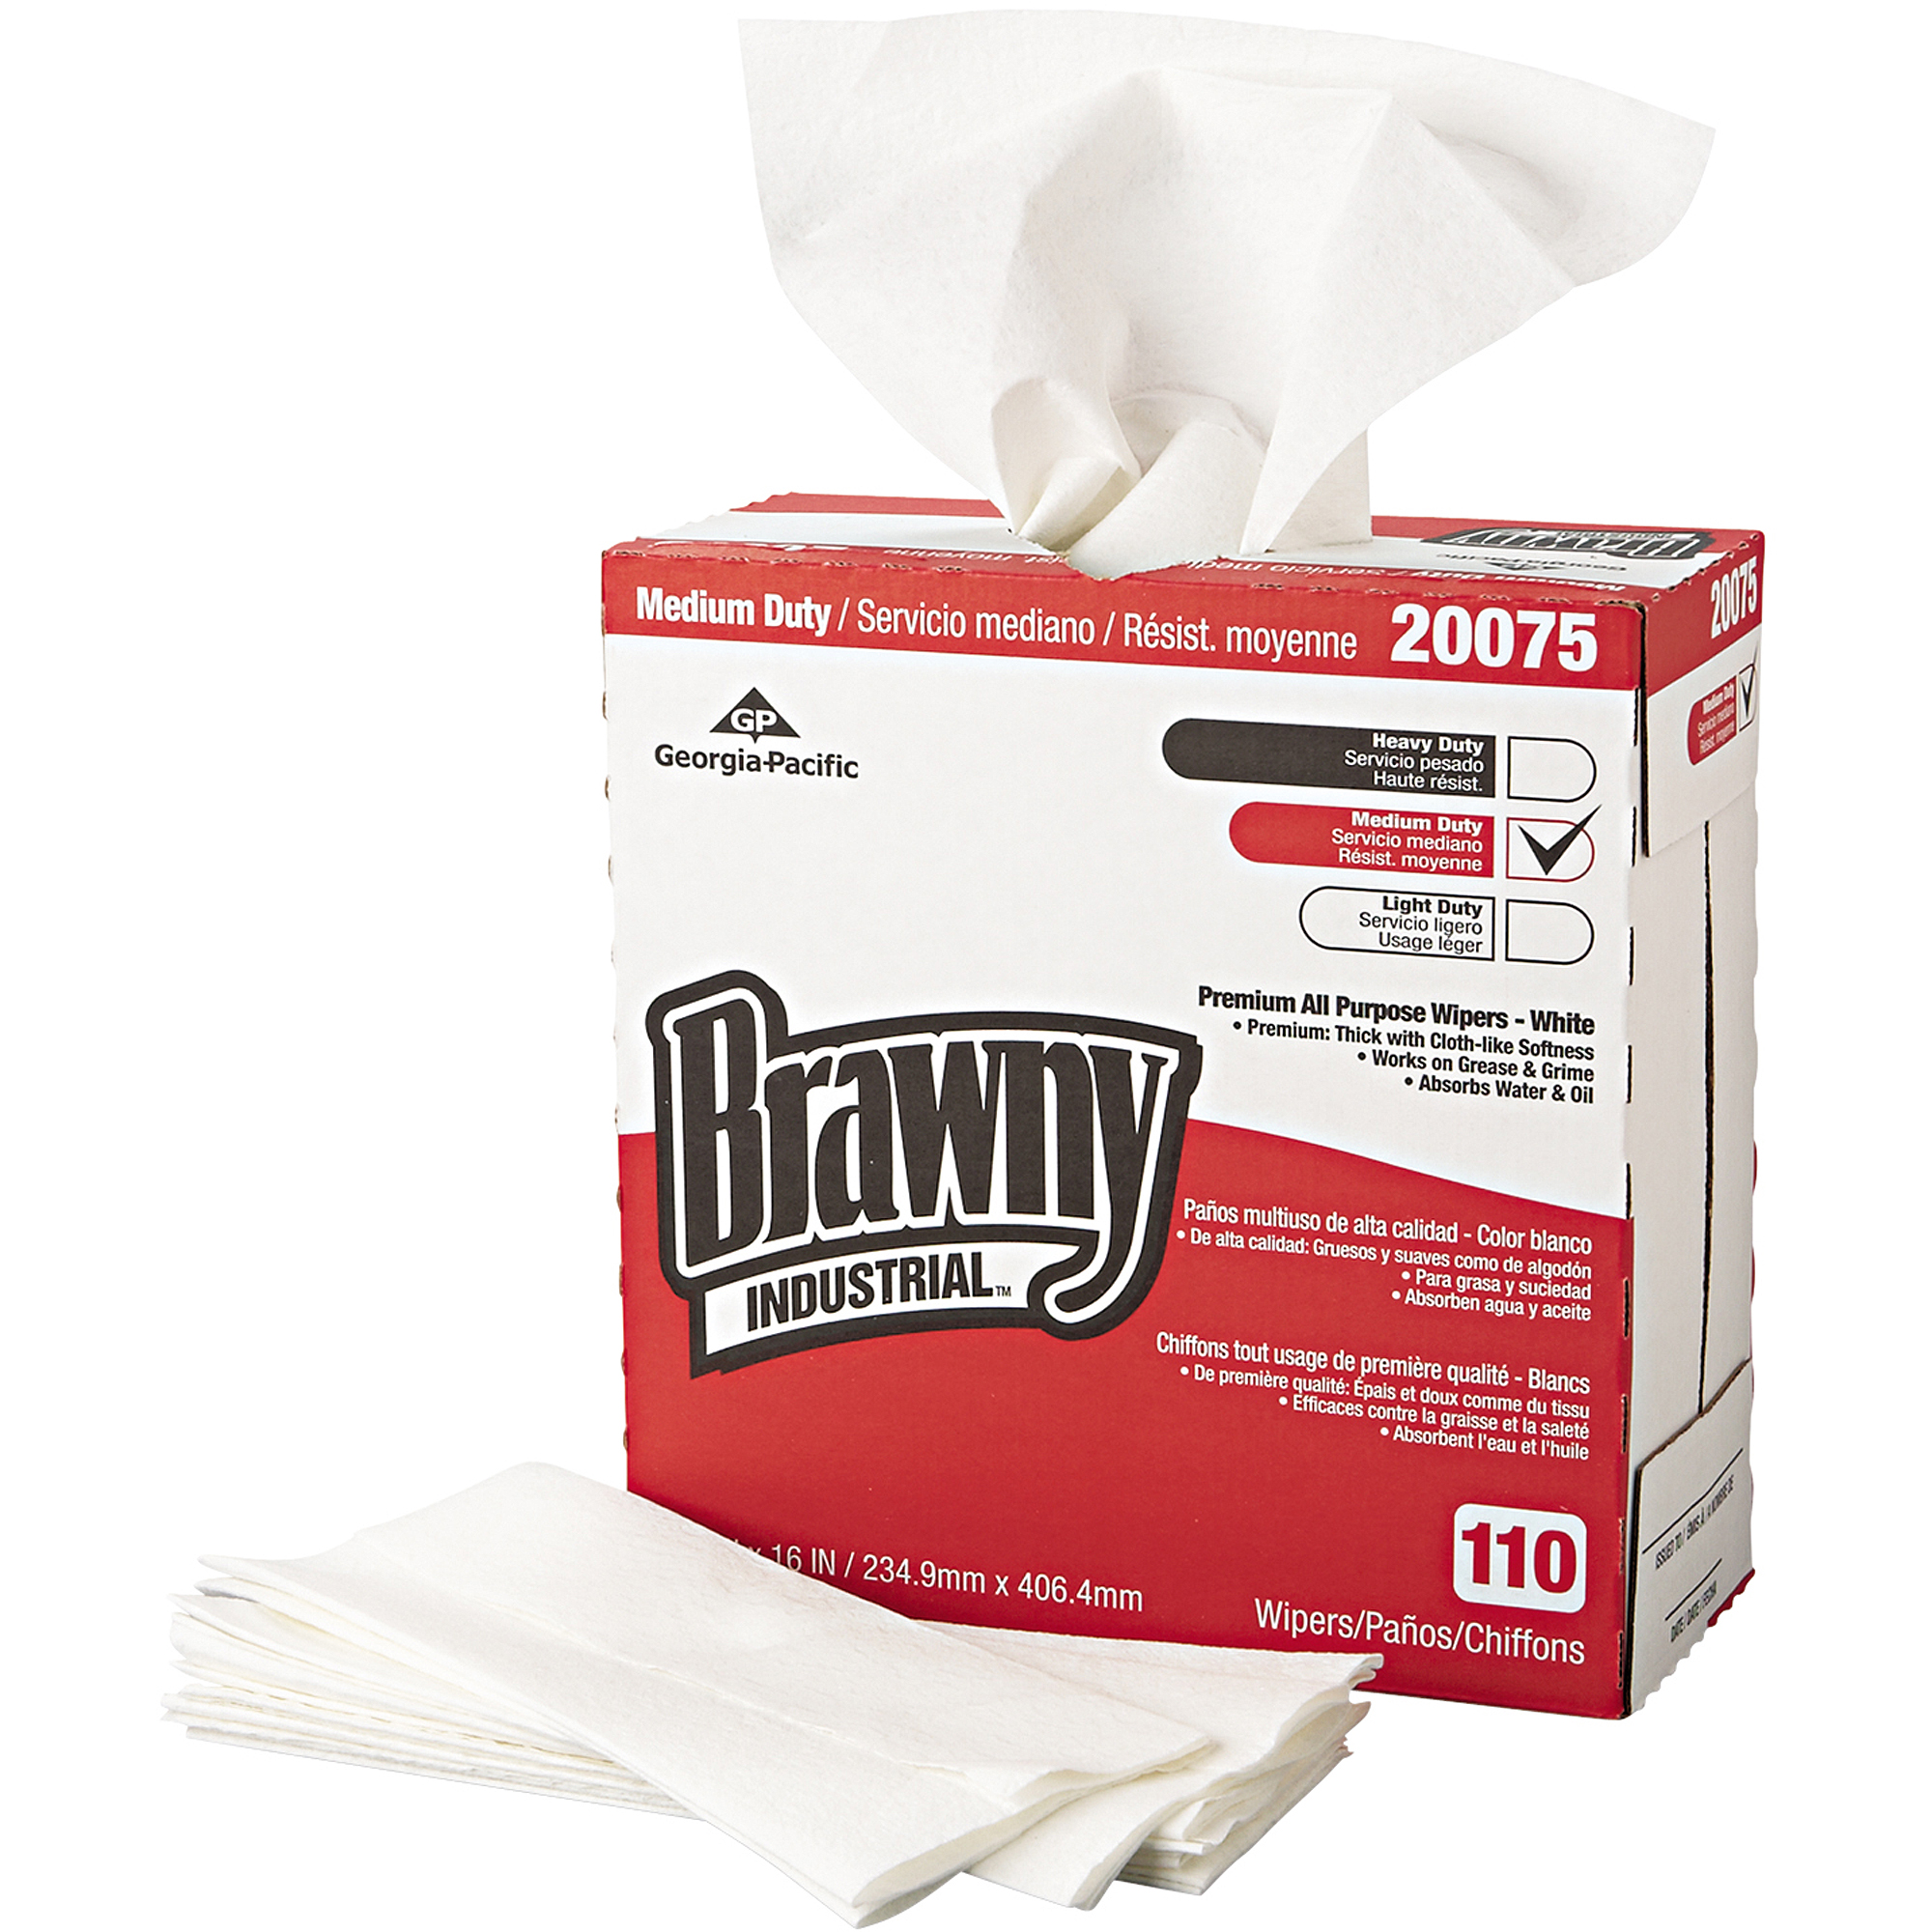 Brawny Industrial Medium Duty Premium All Purpose Wipers, 110 sheets, 10 count